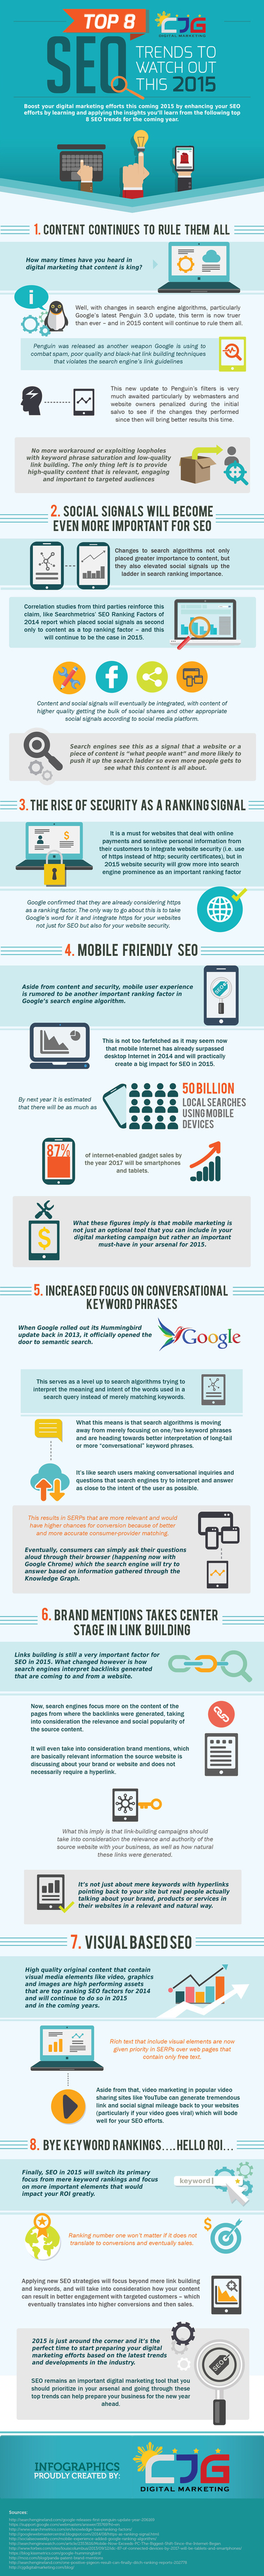 List of the 8 best SEO trends for 2015 infographic   Work from home and make money online   Scoop.it